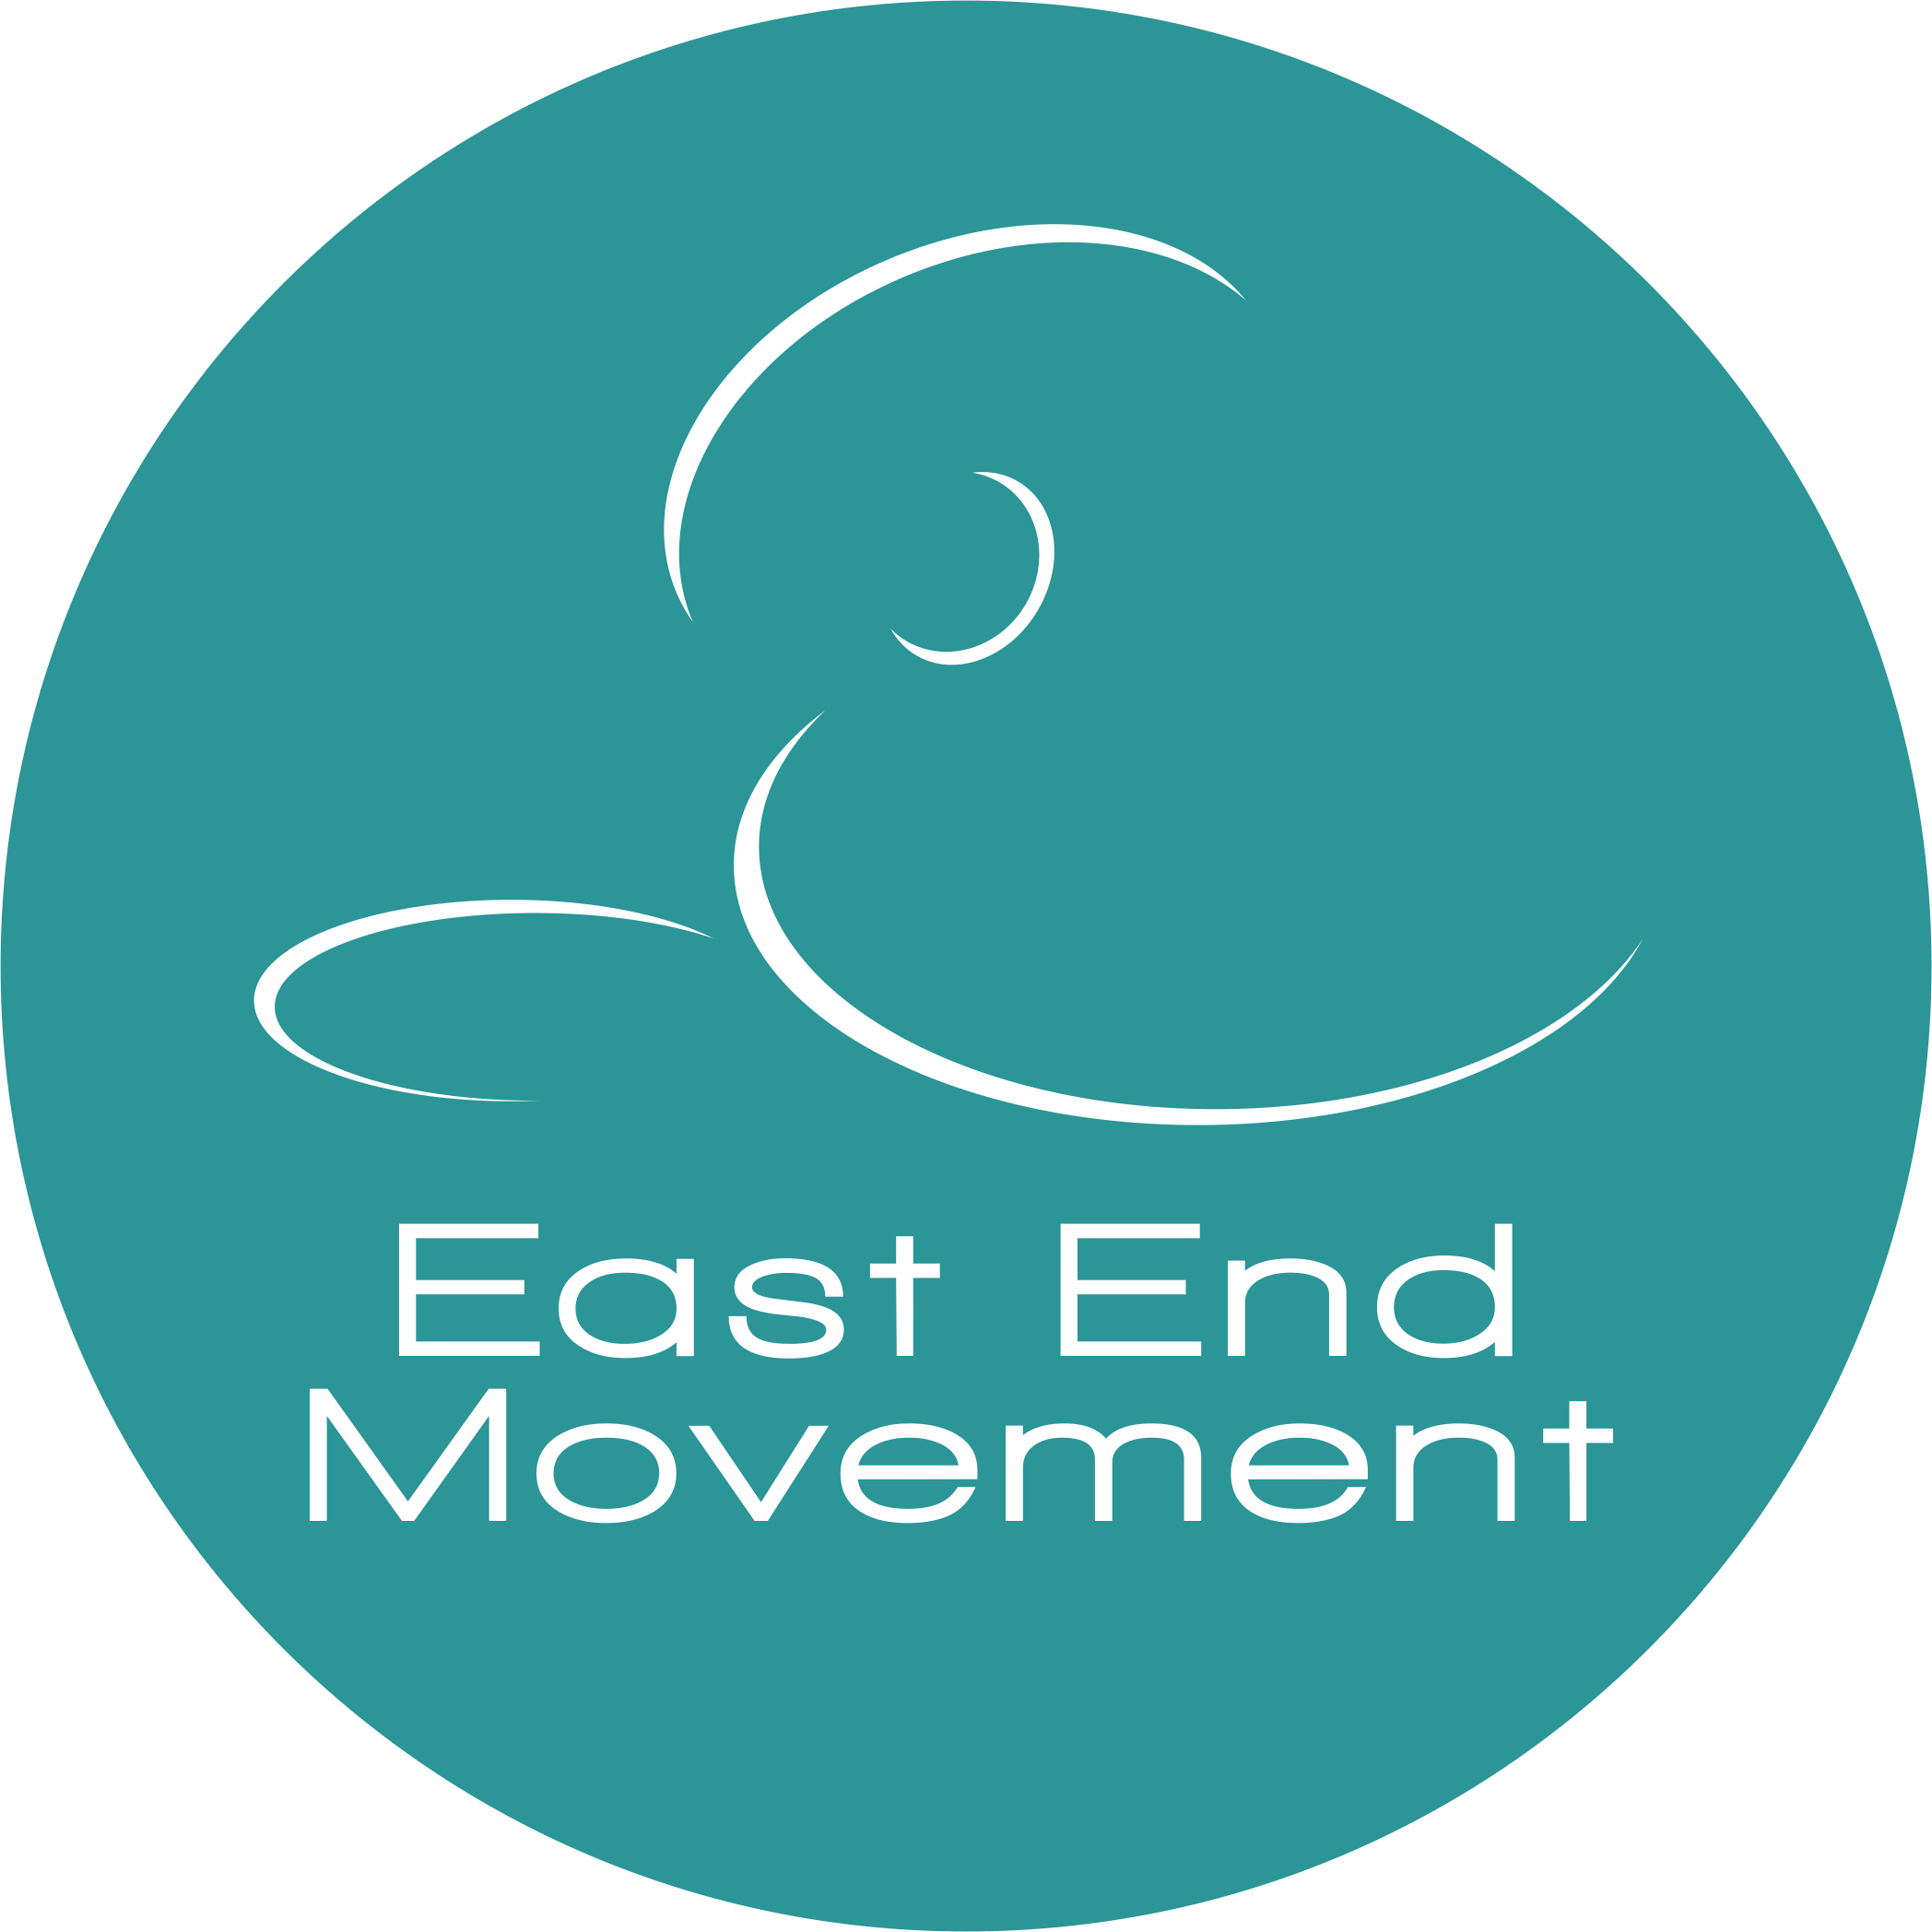 east end movement logo teal.png